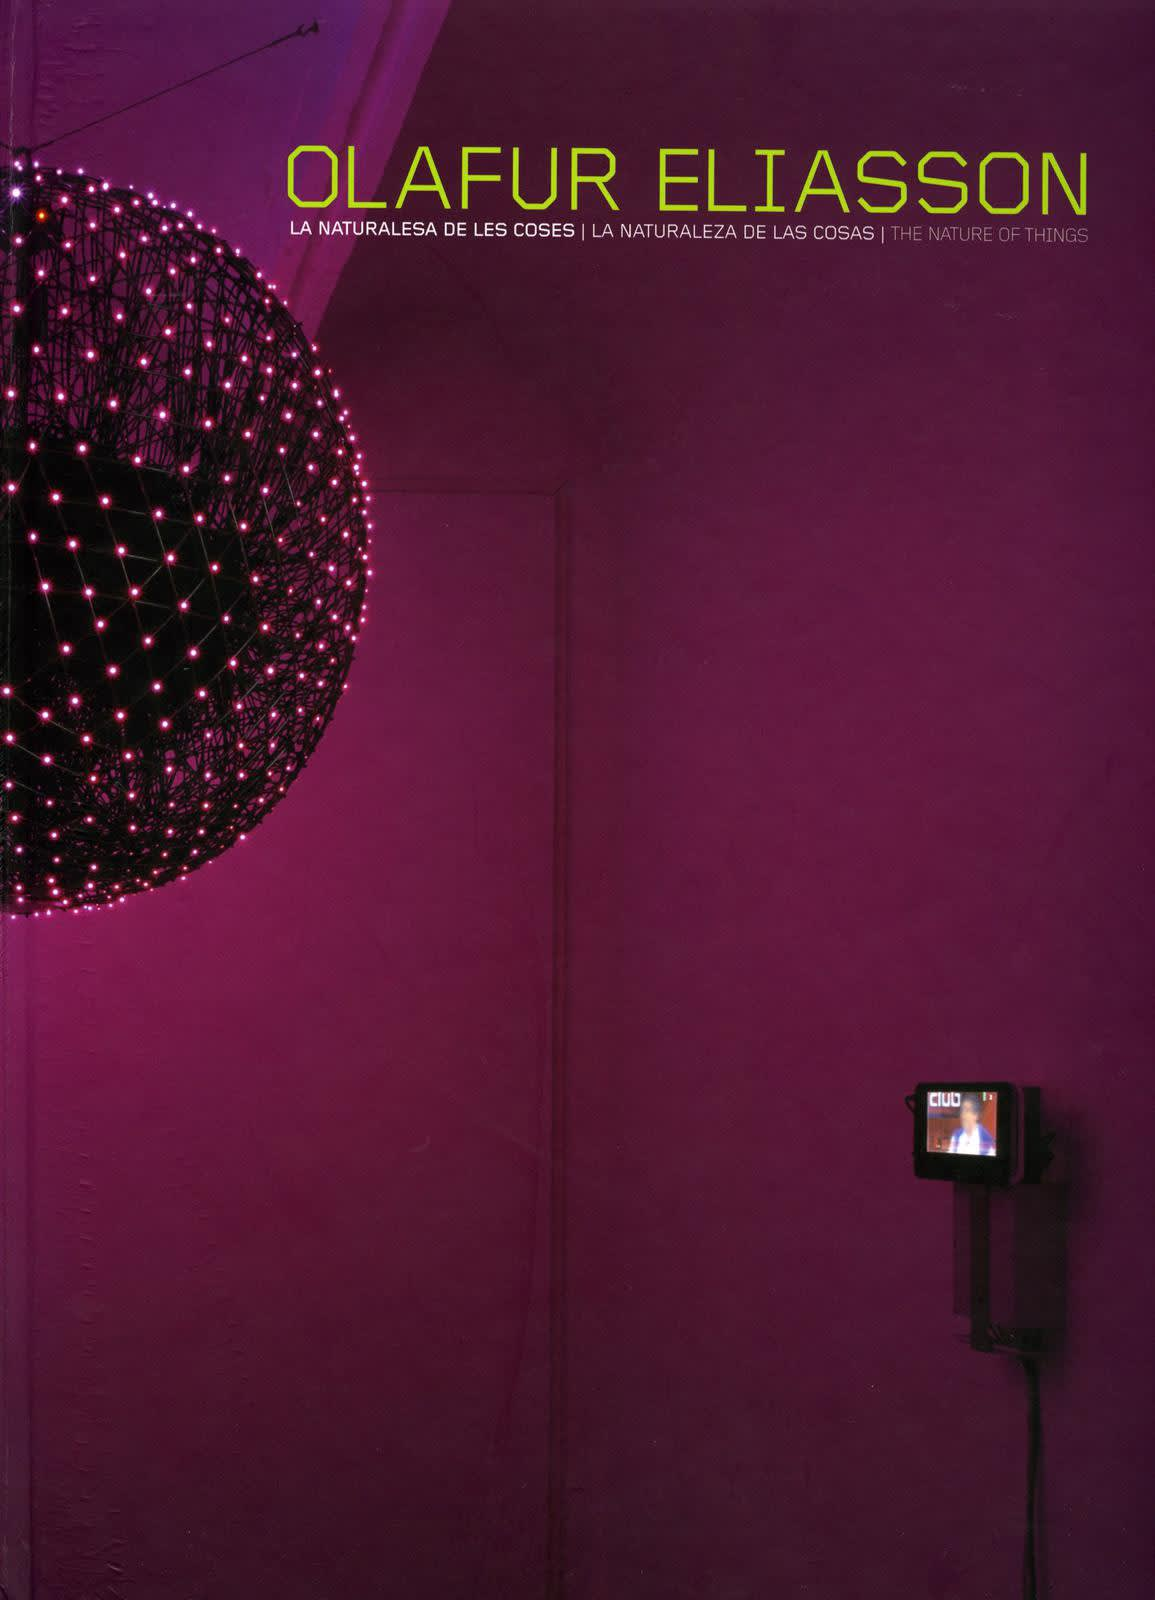 Olafur Eliasson: La Naturalesa de les Coses / La Naturaleza de las Cosas / The Nature of Things